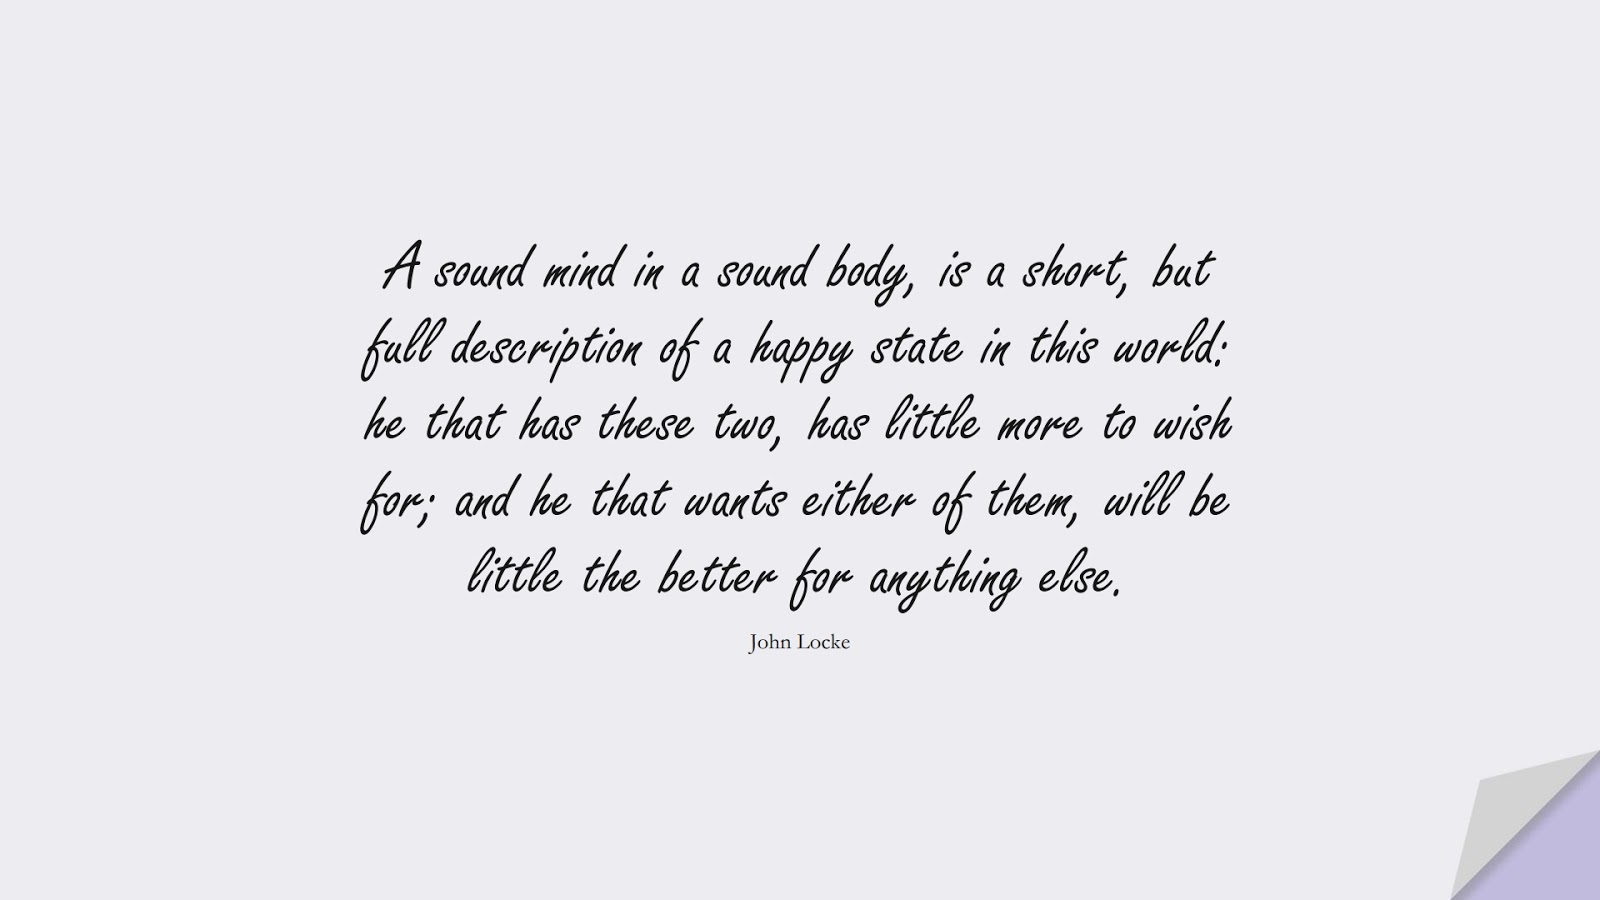 A sound mind in a sound body, is a short, but full description of a happy state in this world: he that has these two, has little more to wish for; and he that wants either of them, will be little the better for anything else. (John Locke);  #HealthQuotes